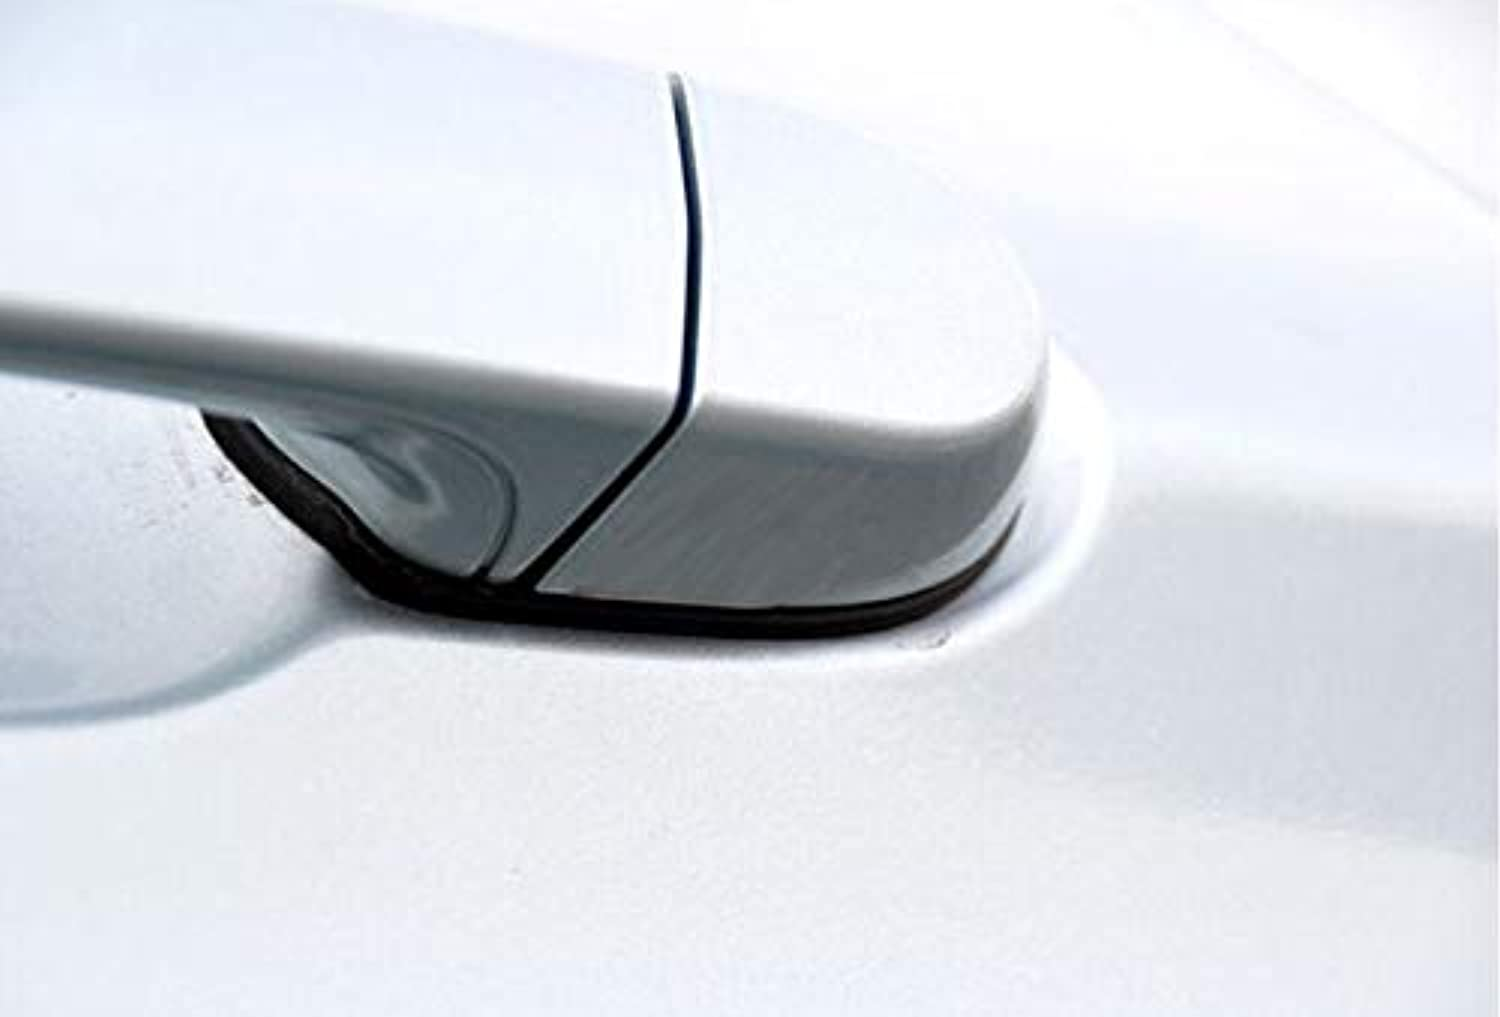 Carbon Fiber Car Styling Side Door Handle Cover with LED Hole Trim for BMW E84 X1 4Door 20122015  (color Name  No Led Hole)